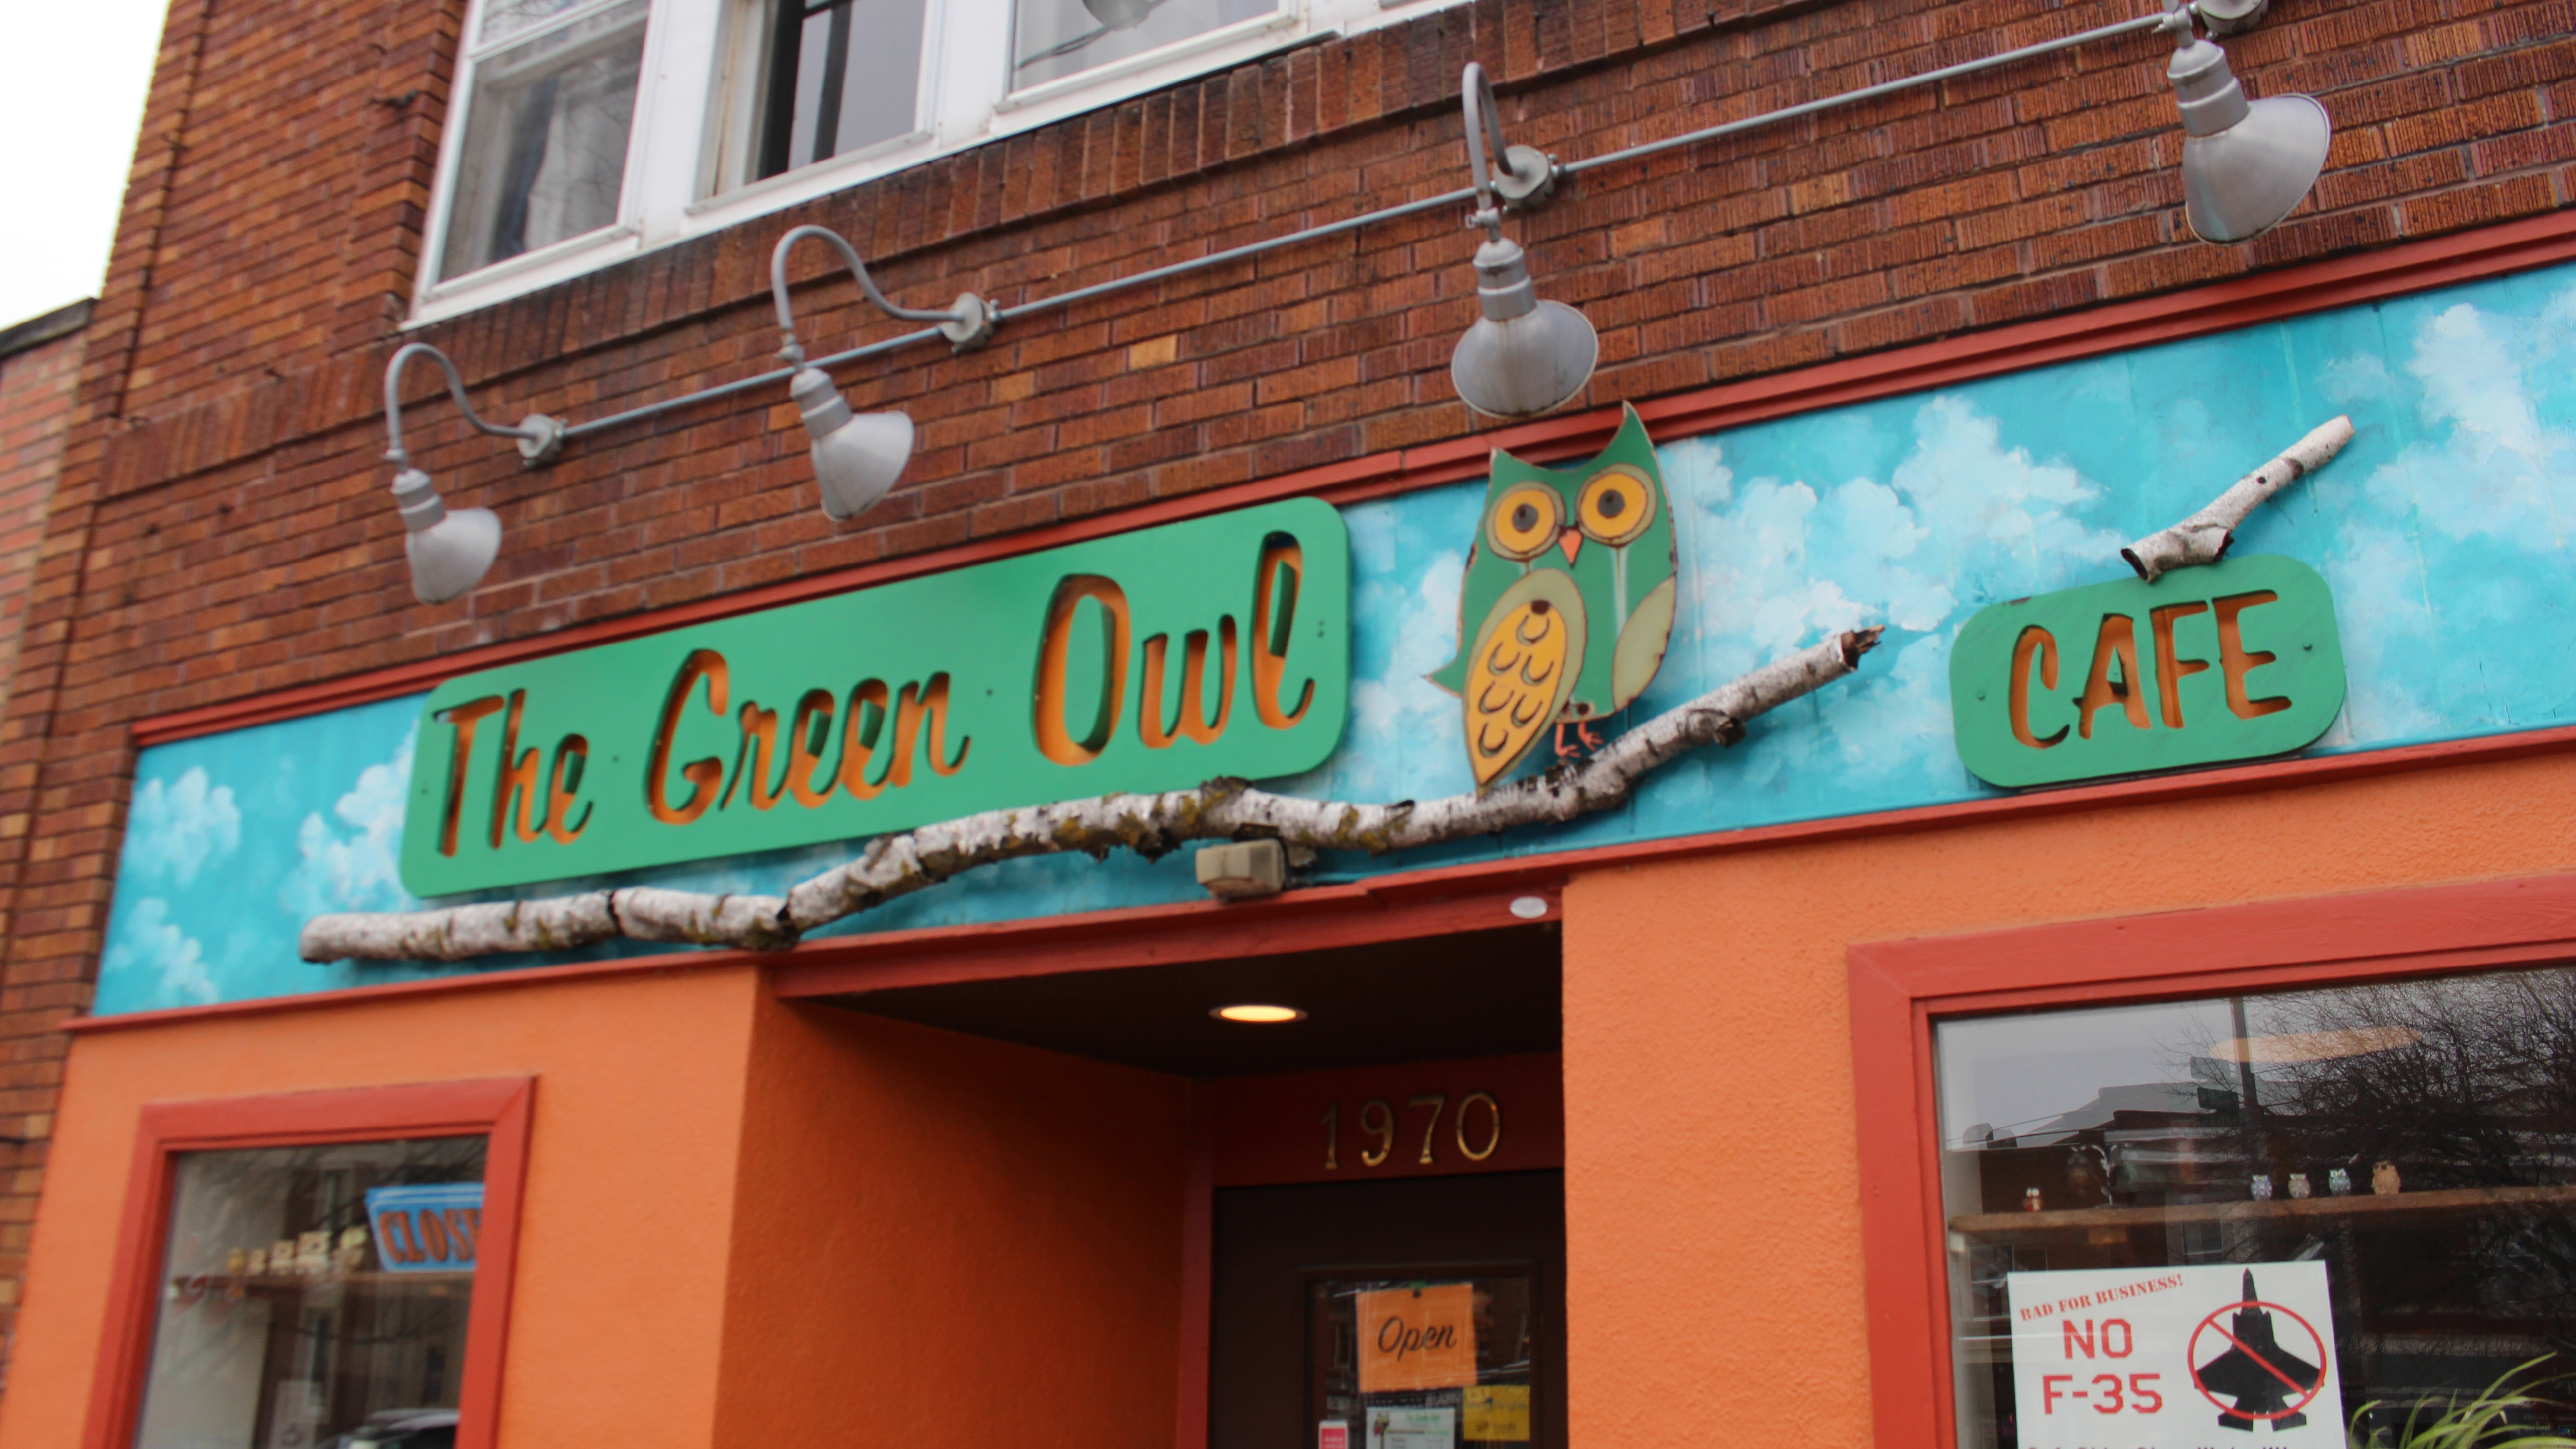 Exterior of The Green Owl